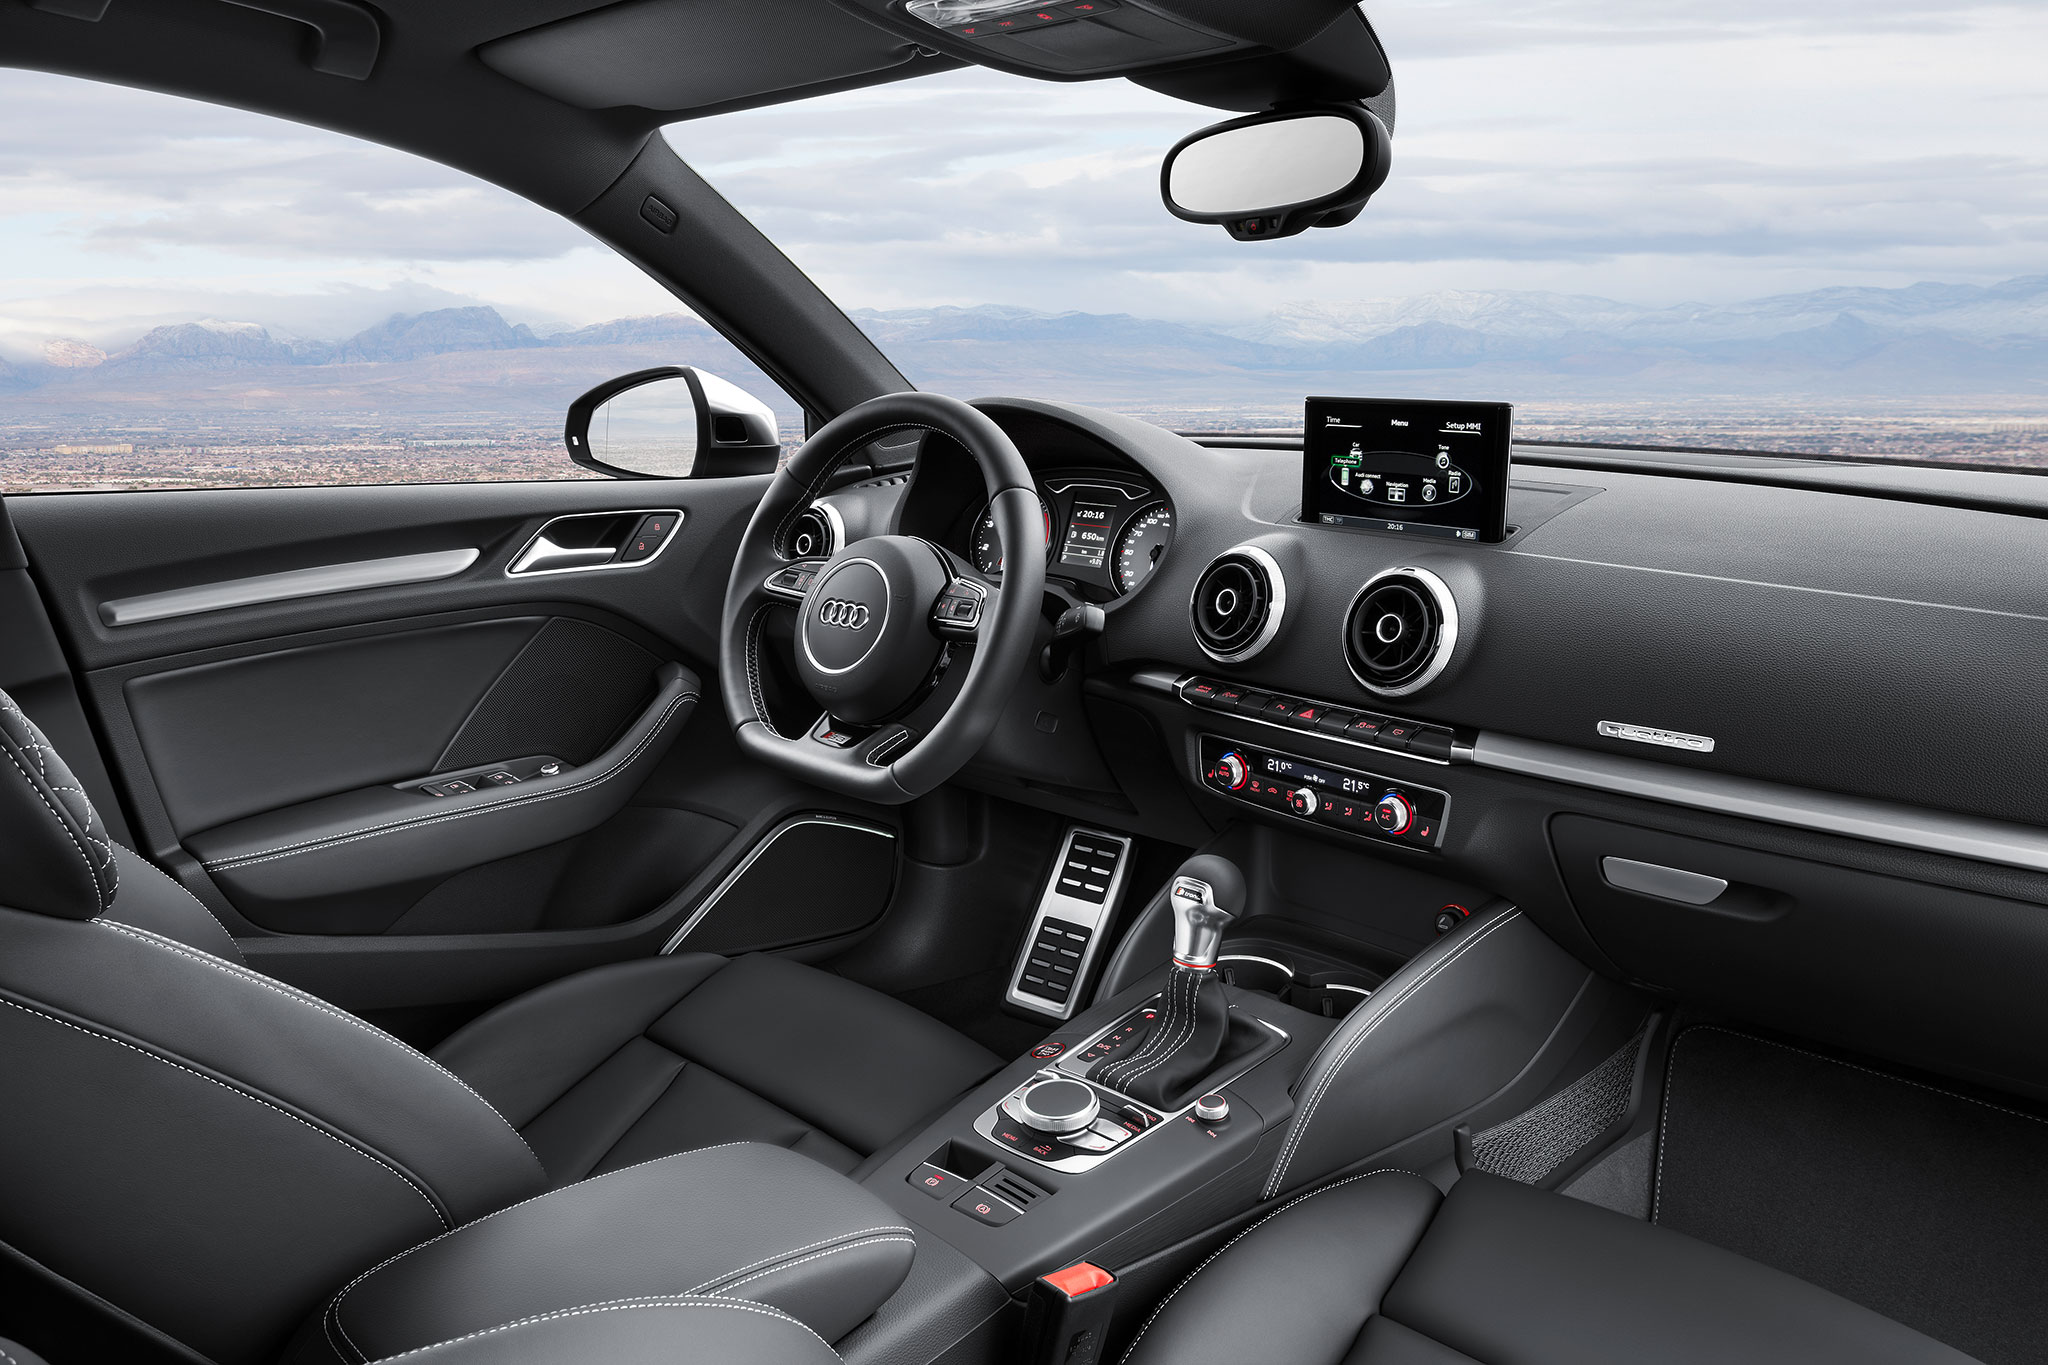 2015 Audi A3 Pricing And Options List Detailed Automobile Magazine